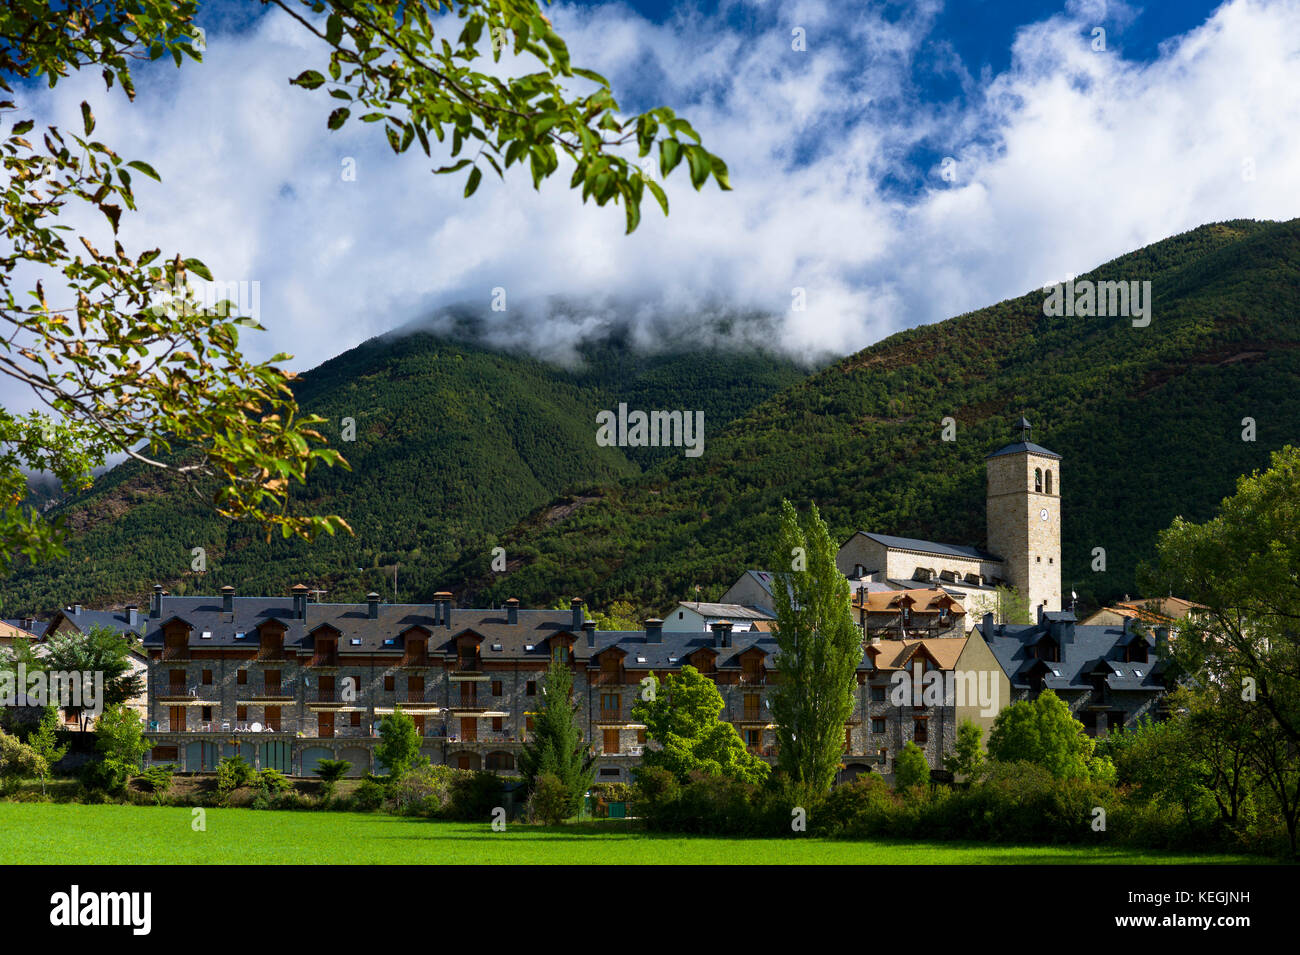 New development in town of Biescas in Valle de Tena, Aragon, Northern Spain. Many Spanish construction projects Stock Photo